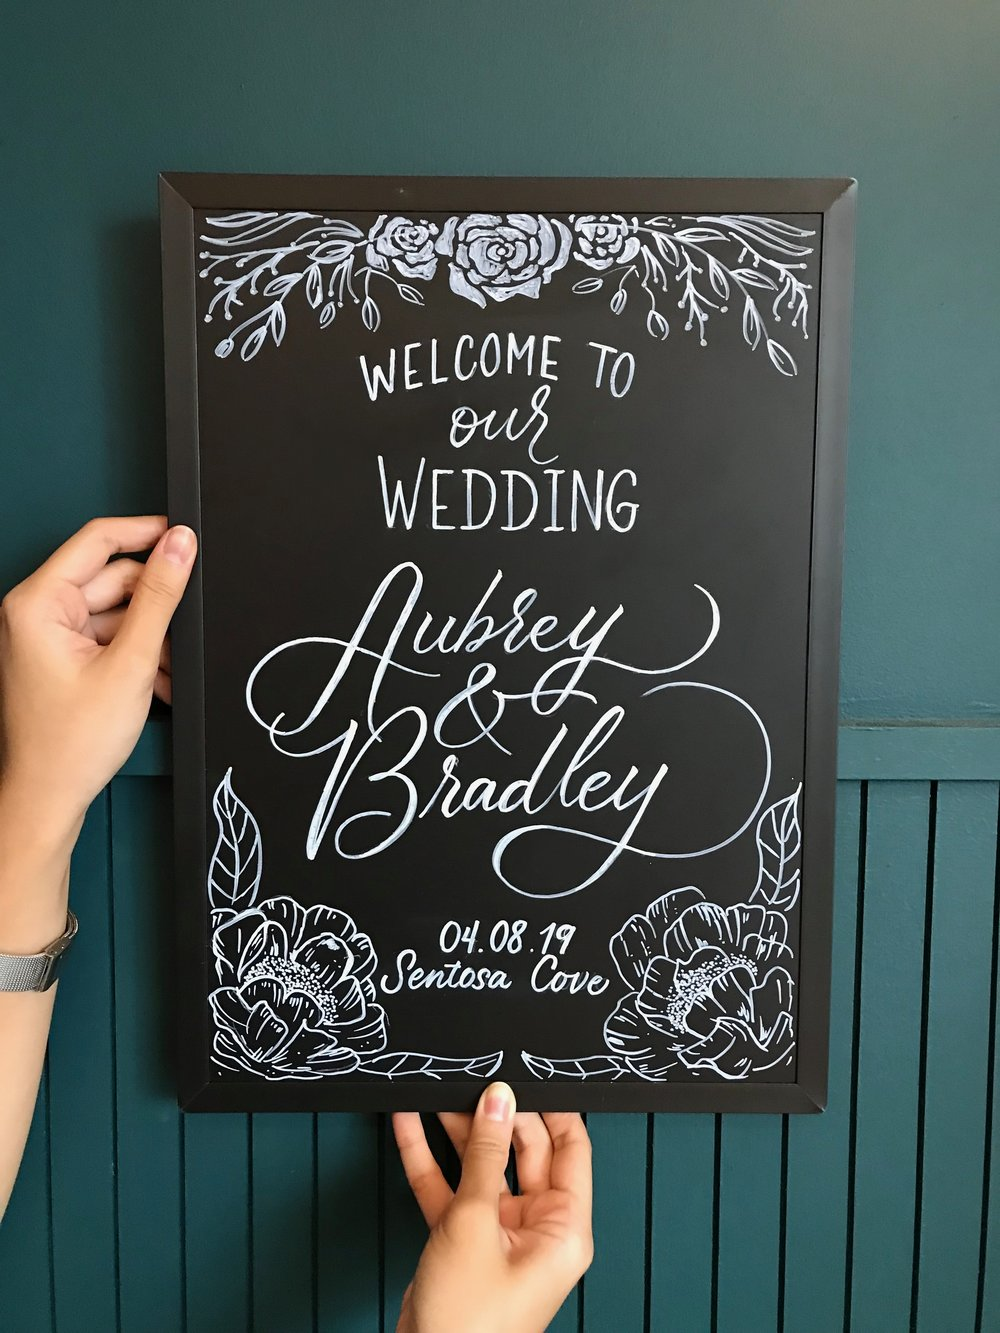 Aubre and Bradley Wedding Chalkboard Signage